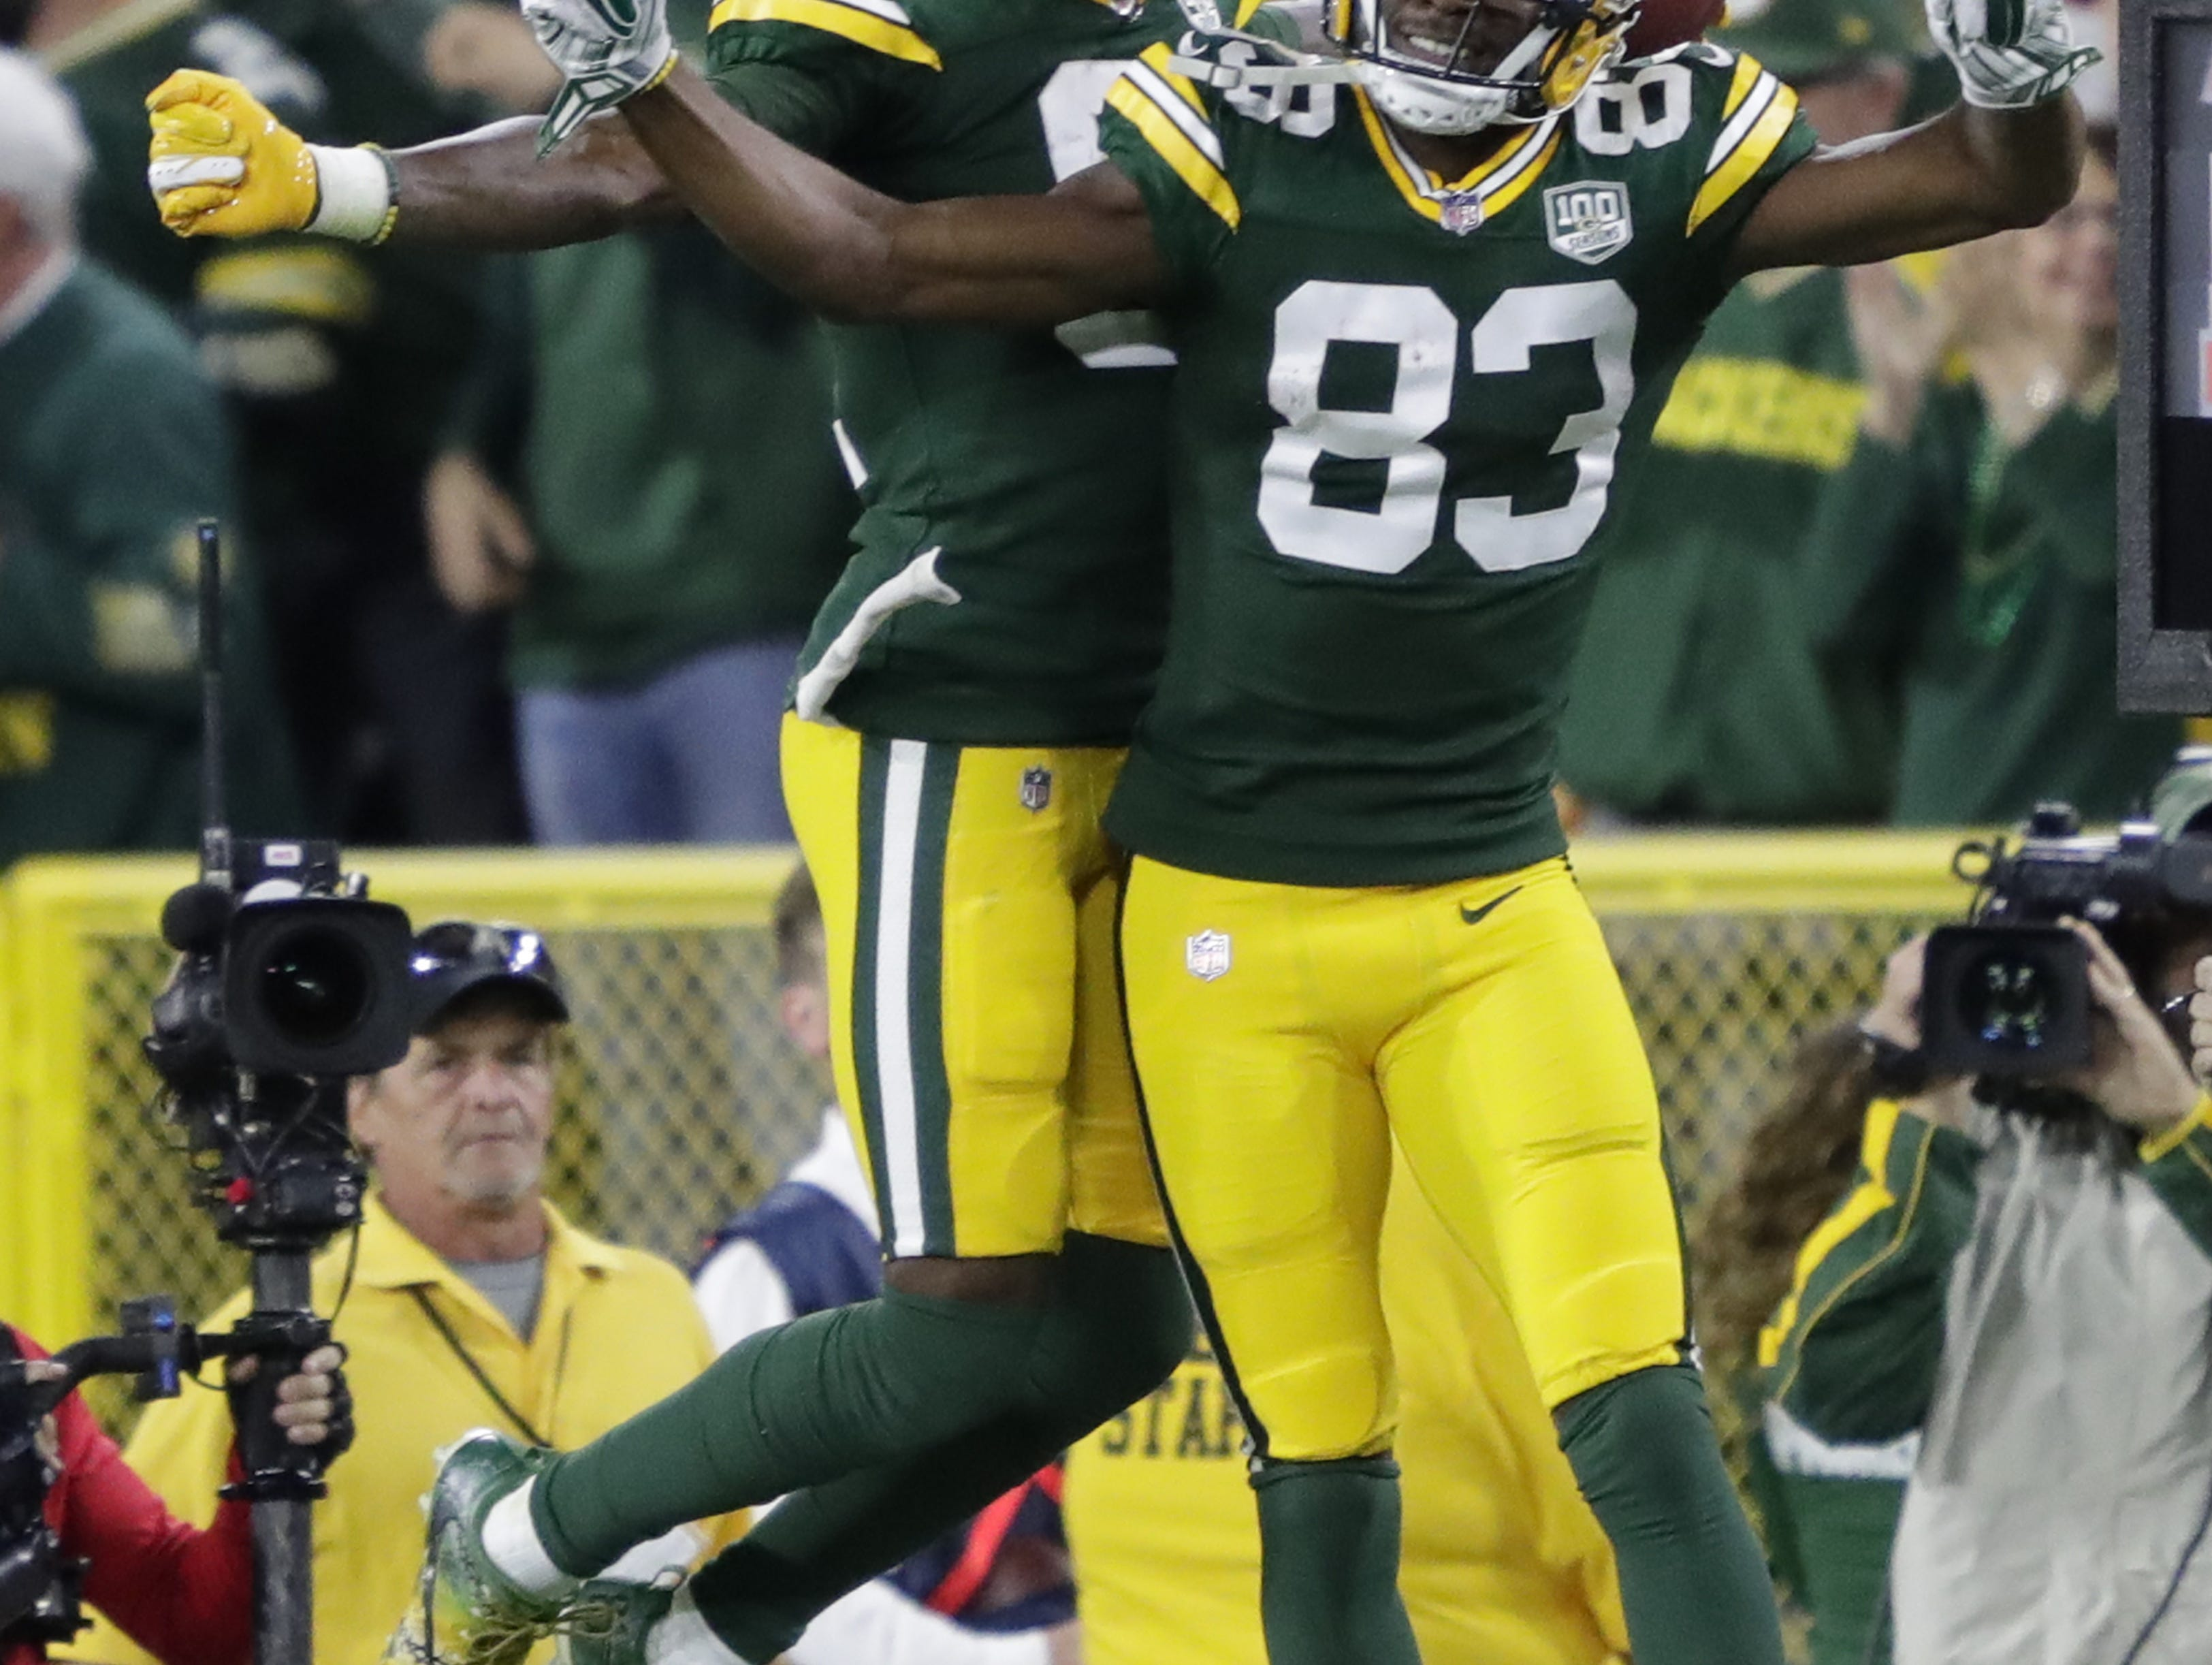 Green Bay Packers wide receiver Geronimo Allison (81) celebrates his touchdown with Marquez Valdes-Scantling (83) in the fourth quarter against the Chicago Bears Sunday, Sept. 9, 2018, at Lambeau Field in Green Bay, Wis.